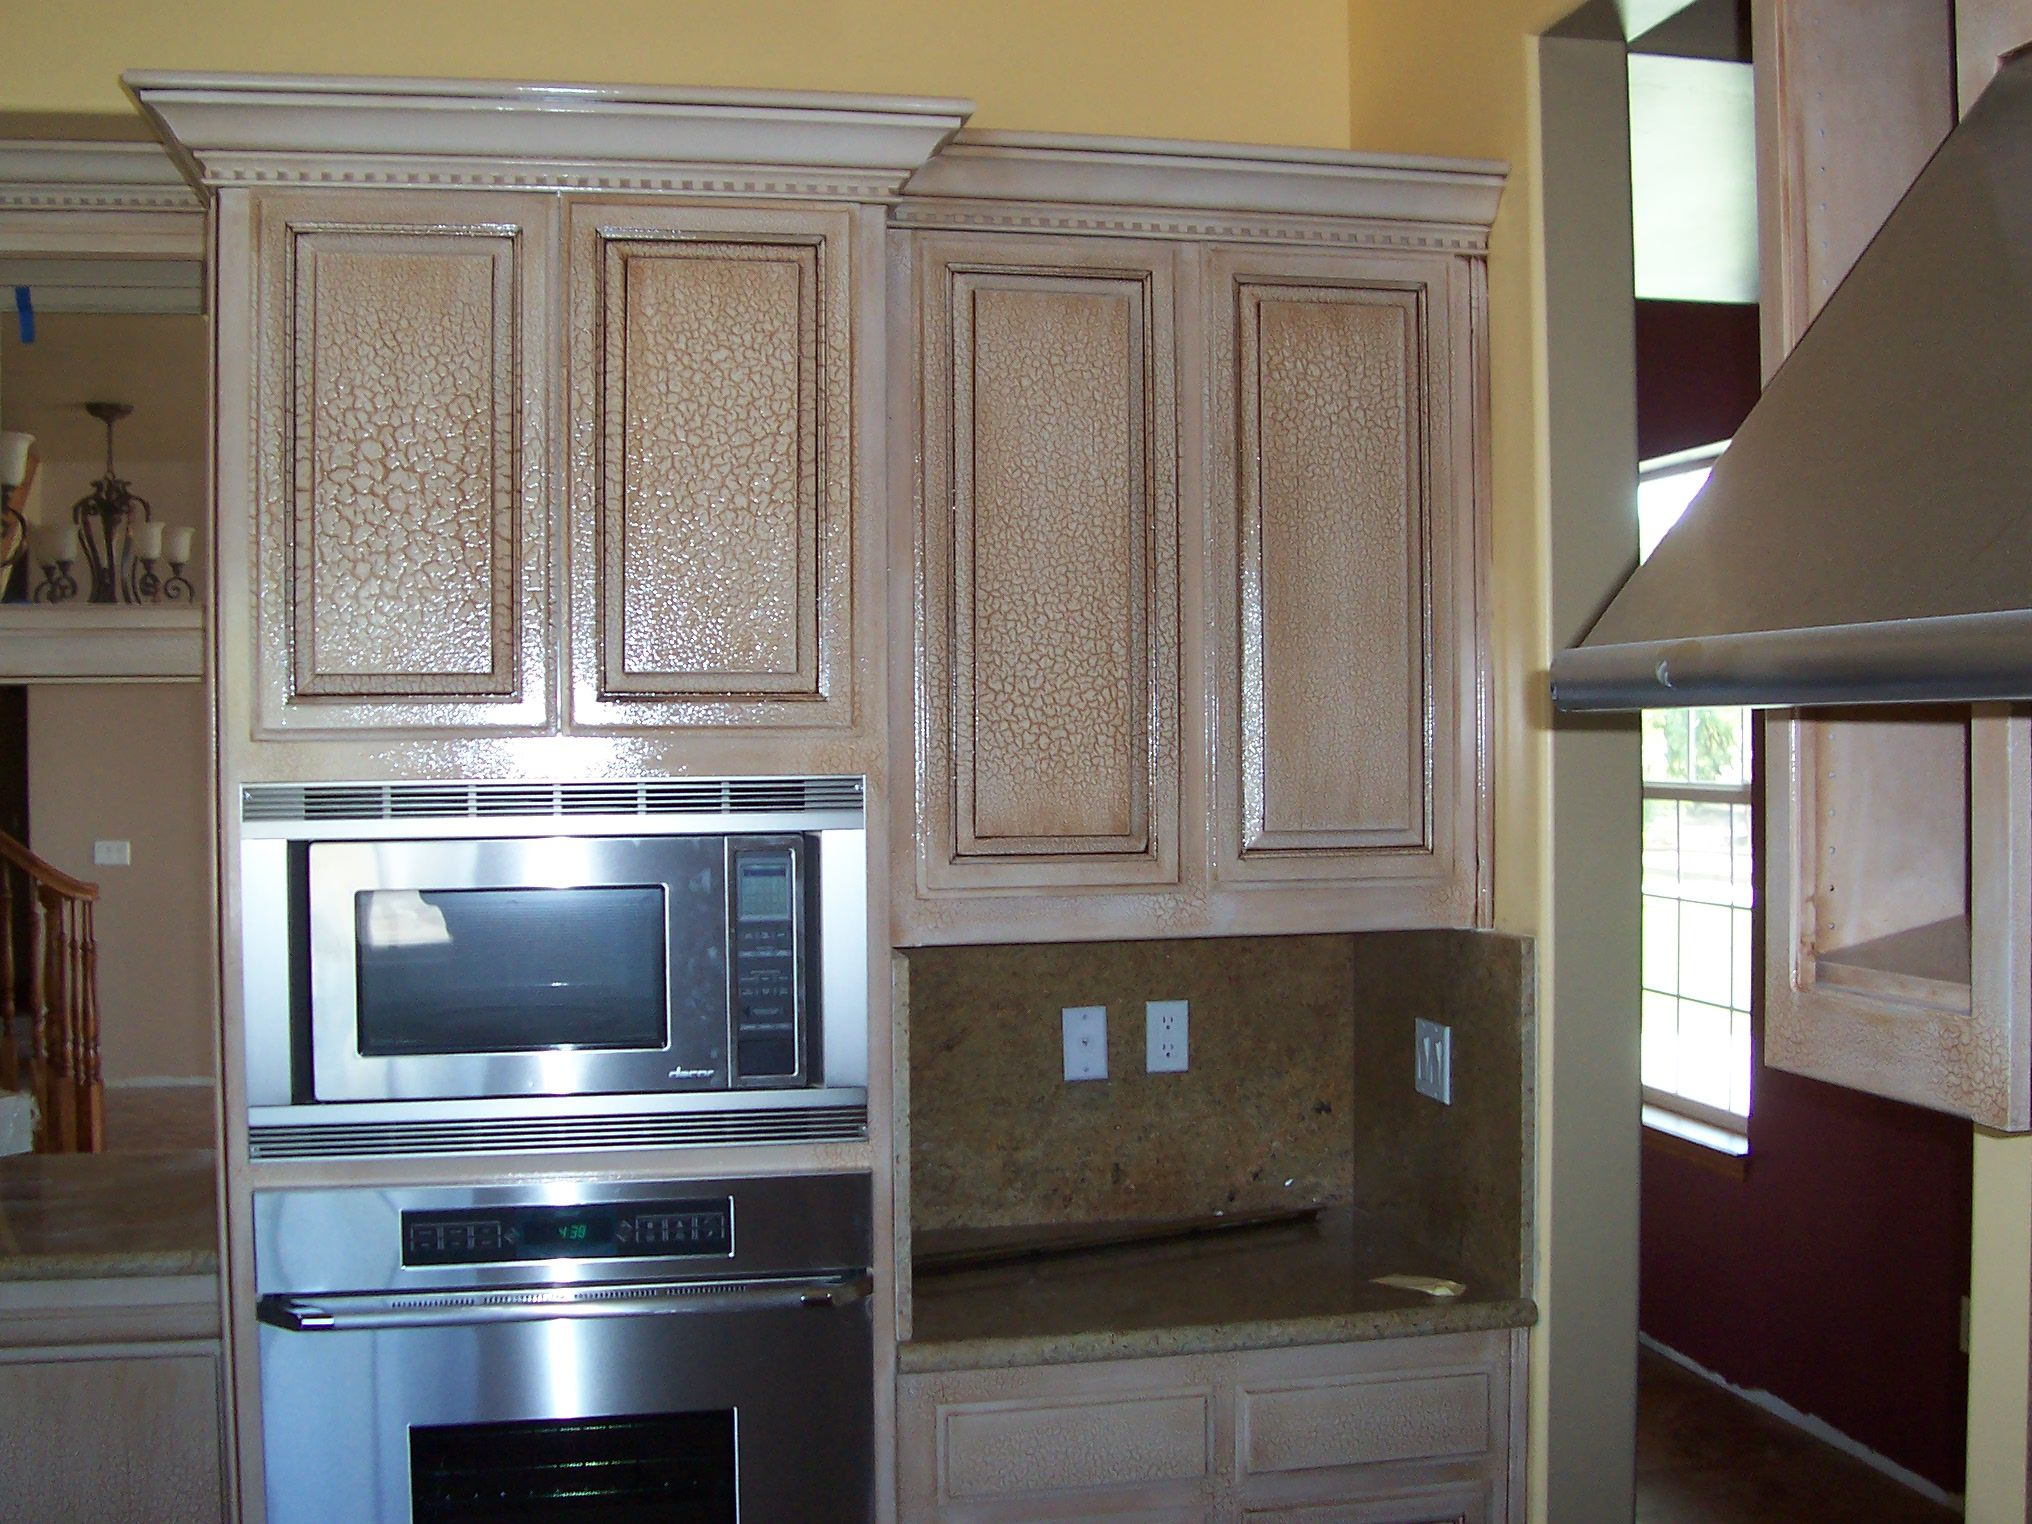 Crackle finish on kitchen cabinets antique paint design for Antique painting kitchen cabinets ideas